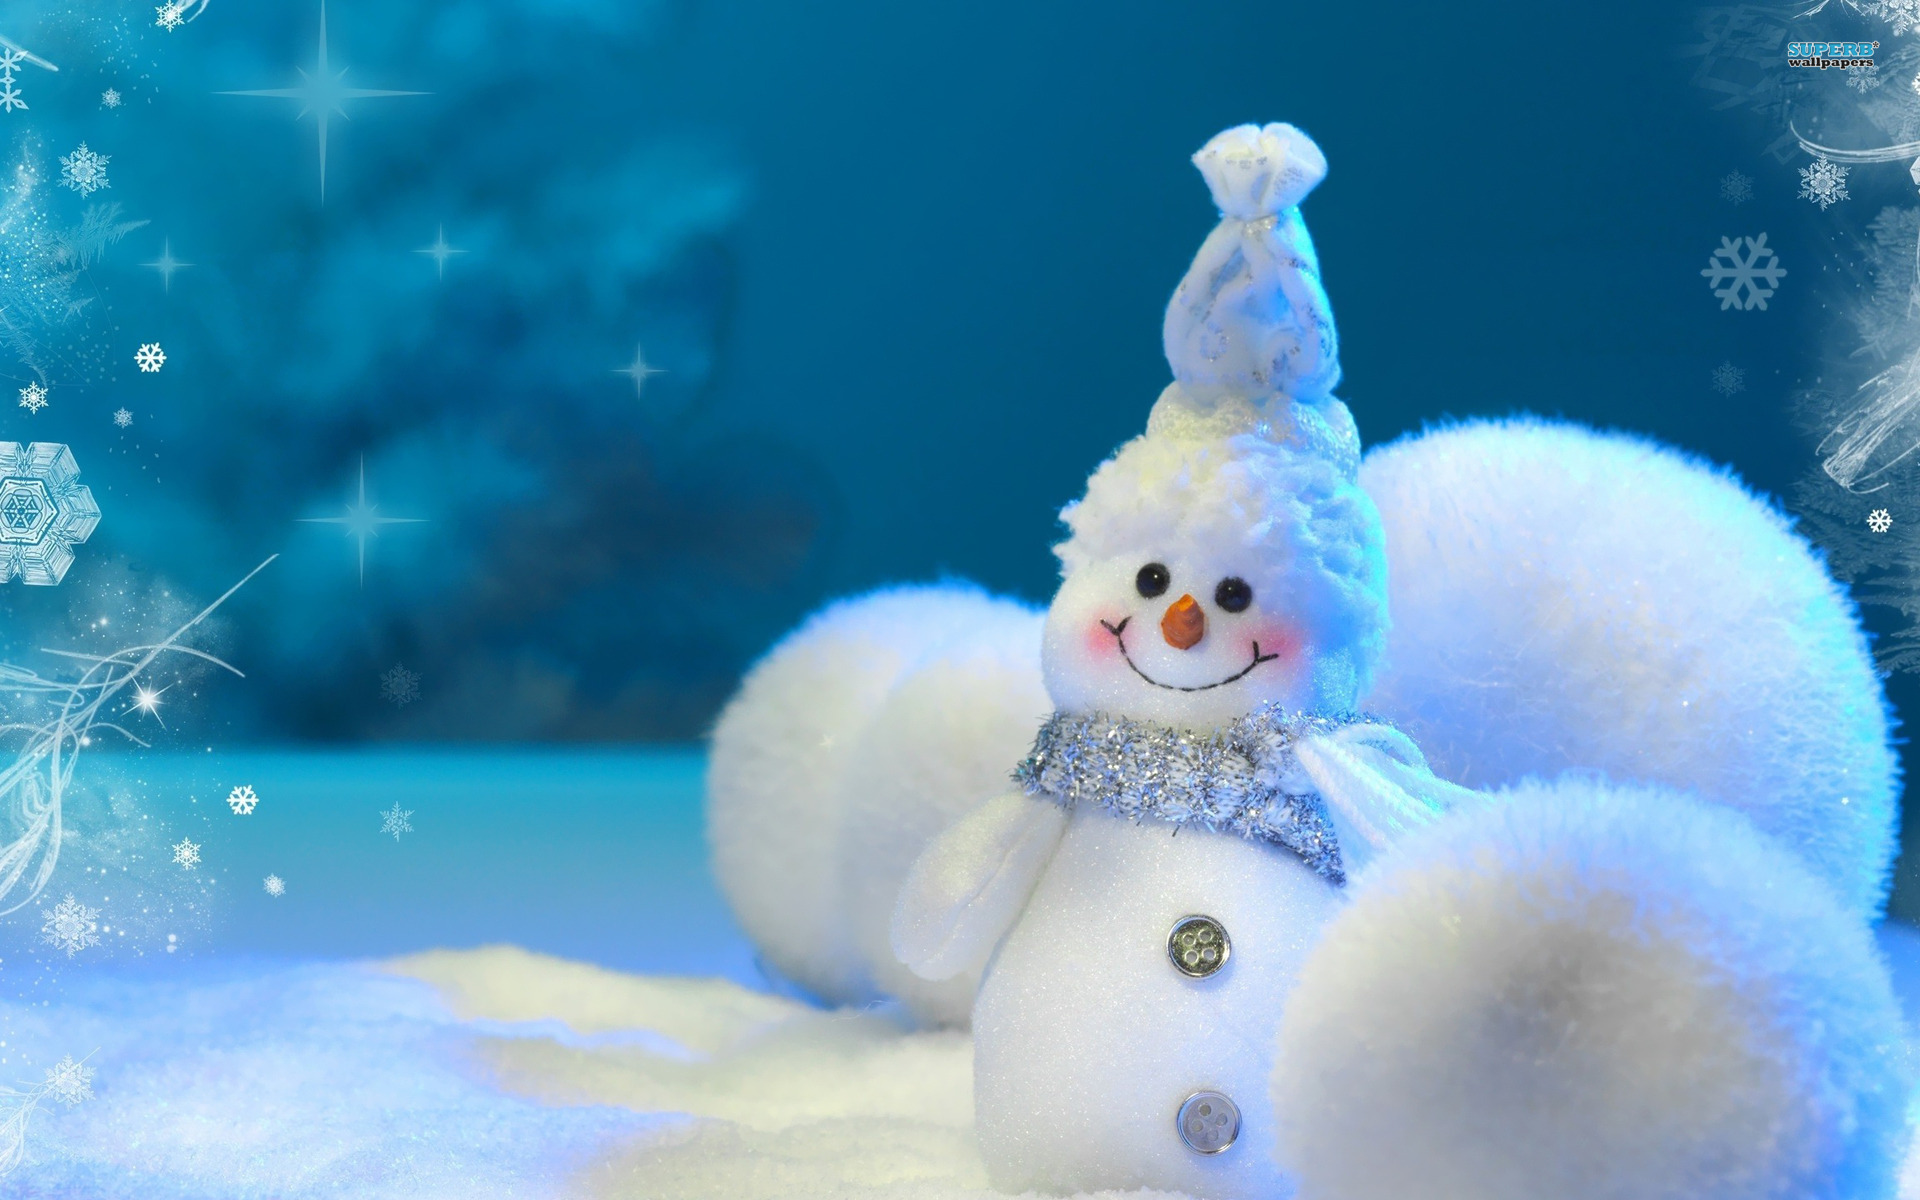 Winter Snowman Wallpaper Snowman wallpaper hd 1920x1200